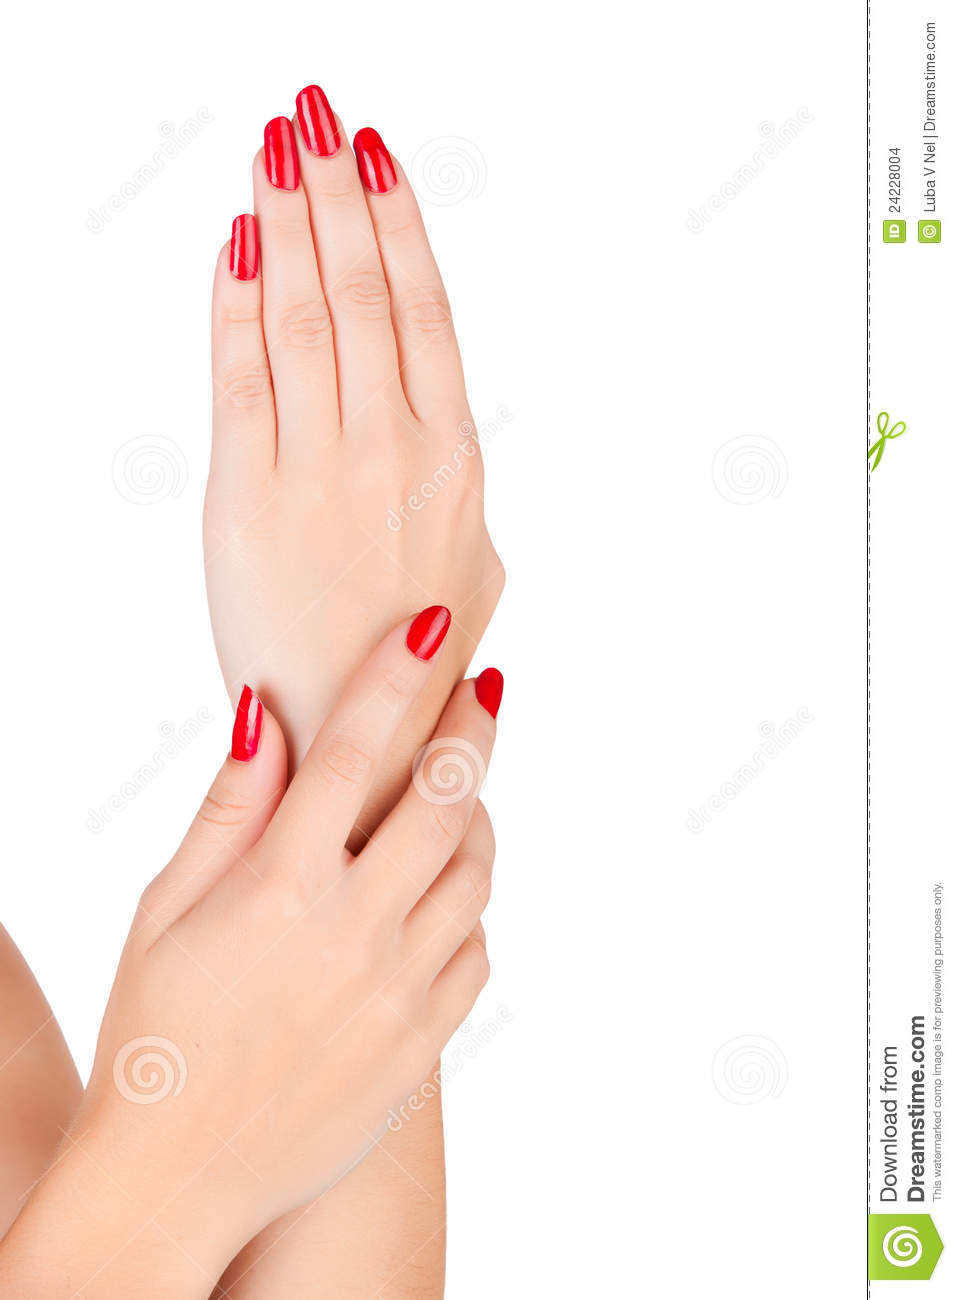 How To Paint Your Nails Red - Nails Gallery